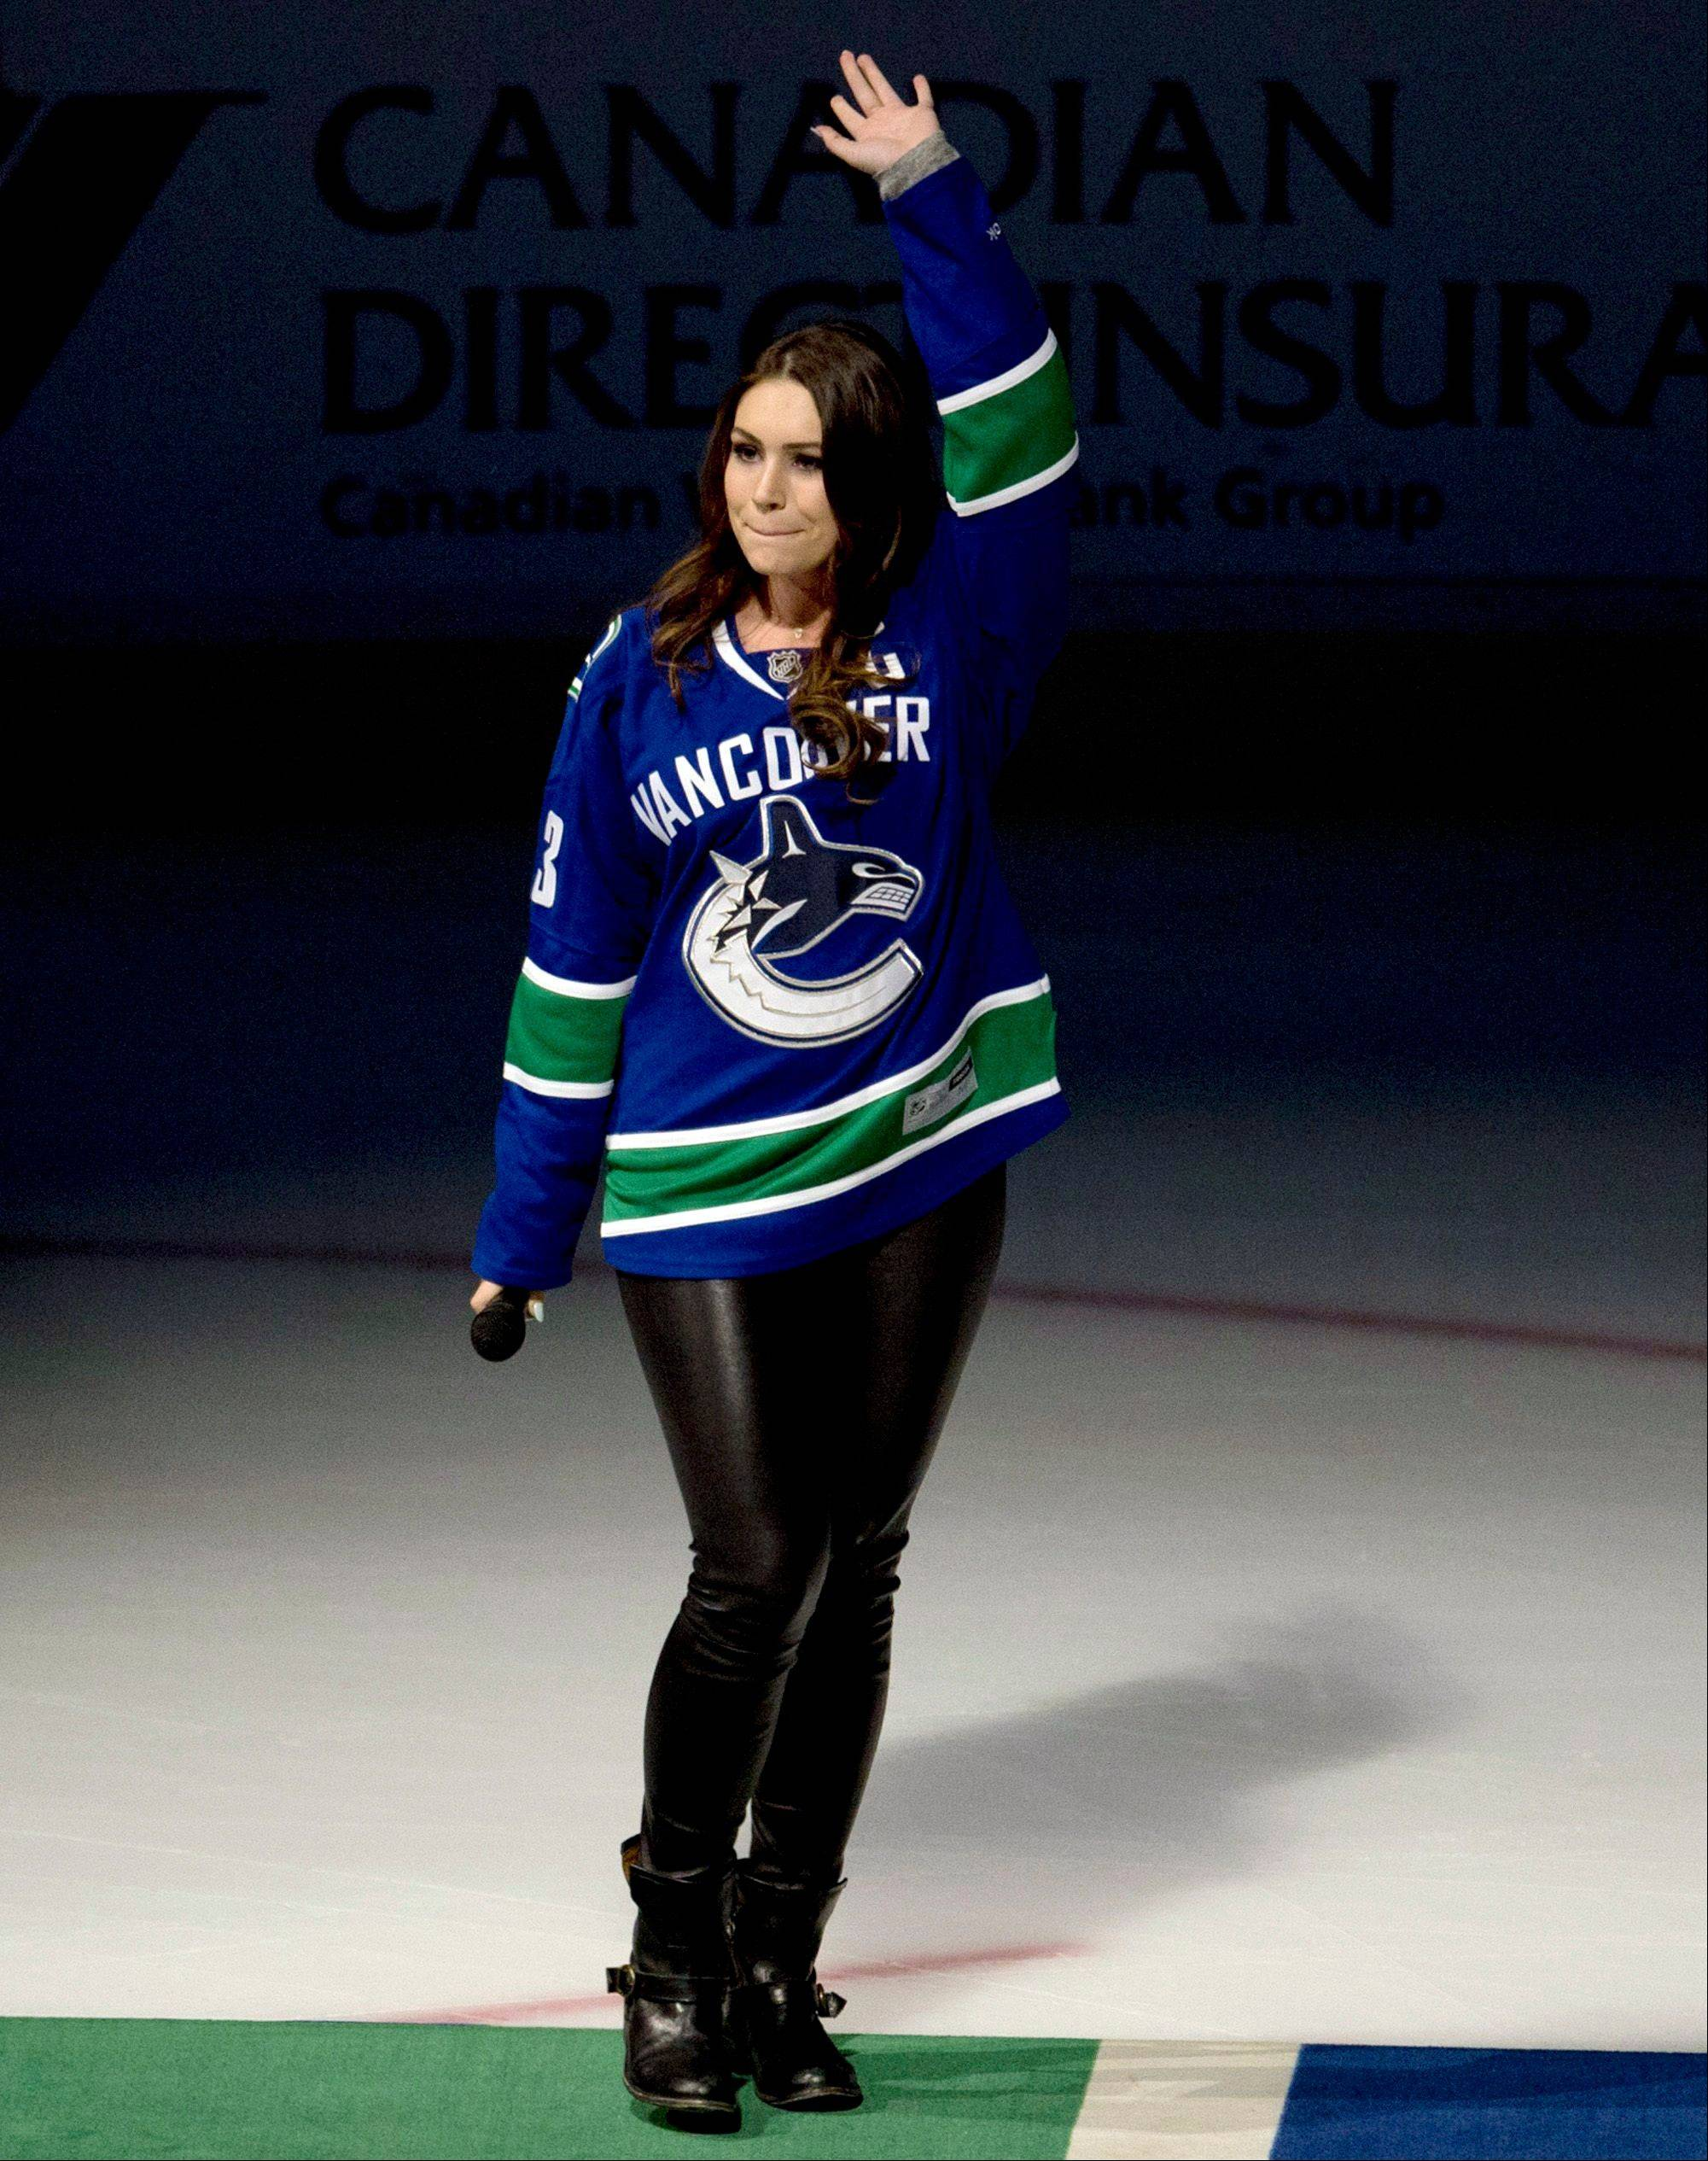 Sophie Tweed Simmons waves to the crowd after singing the national anthems prior to an NHL hockey game between the Vancouver Canucks and Chicago Blackhawks in Vancouver, B.C. on Monday, April 22, 2013.